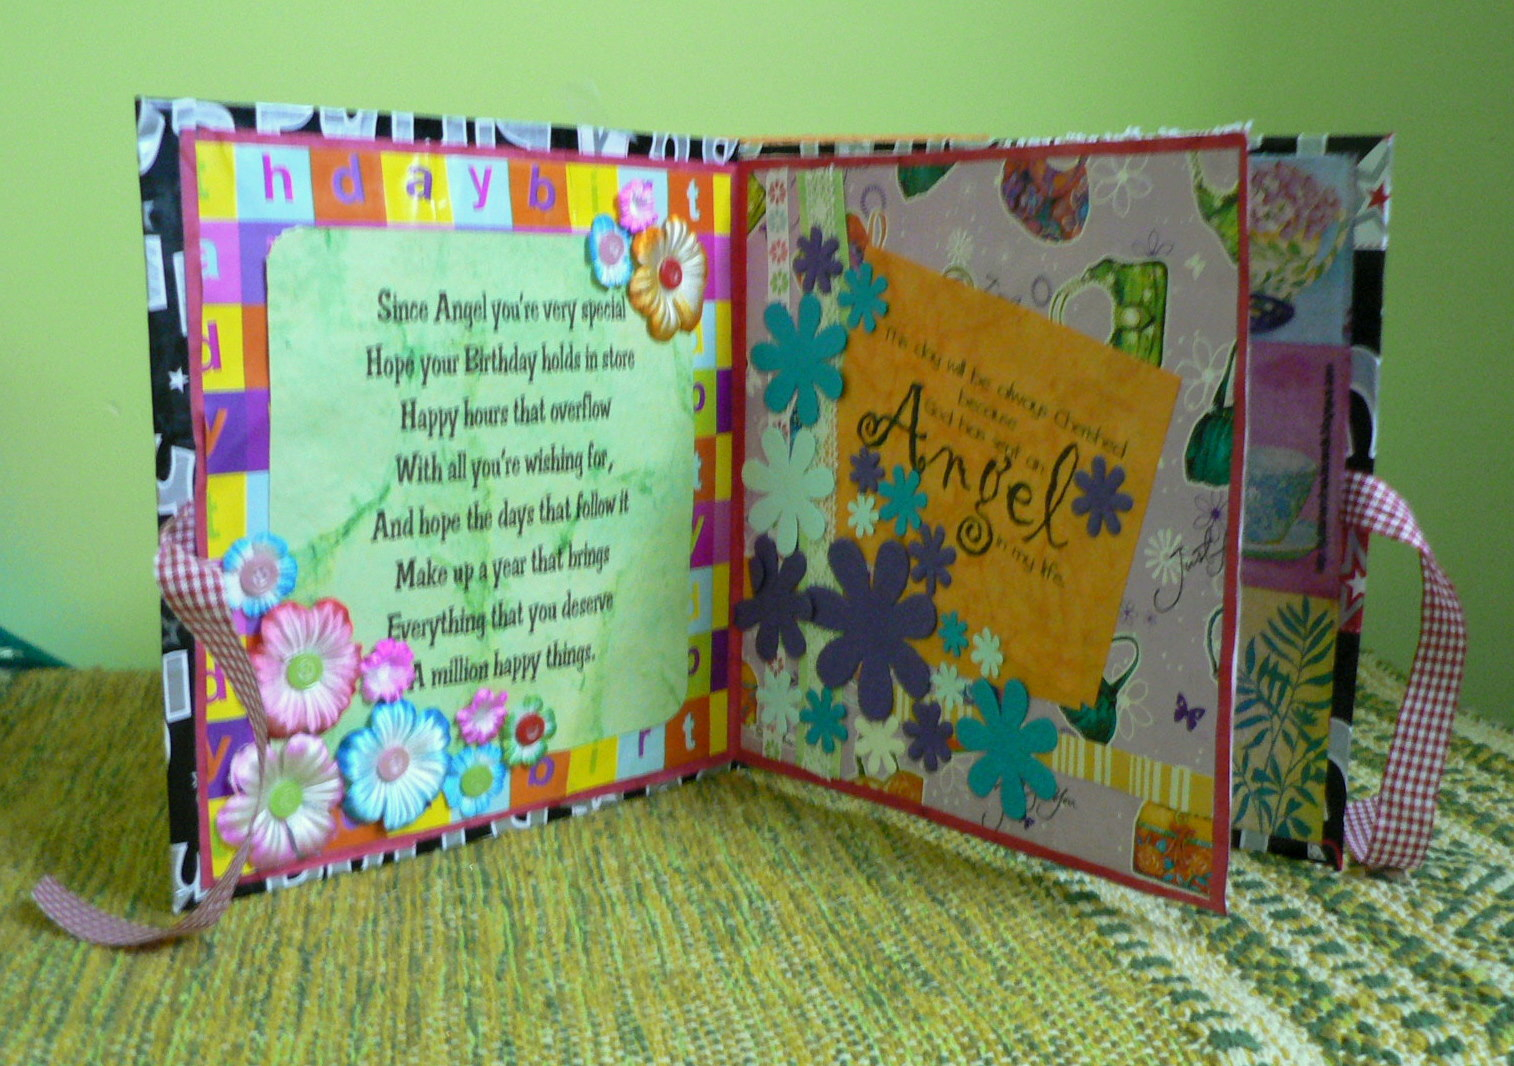 Amazing Birthday Card Ideas 30 Cool Handmade Card Ideas For Birthday Christmas And Other